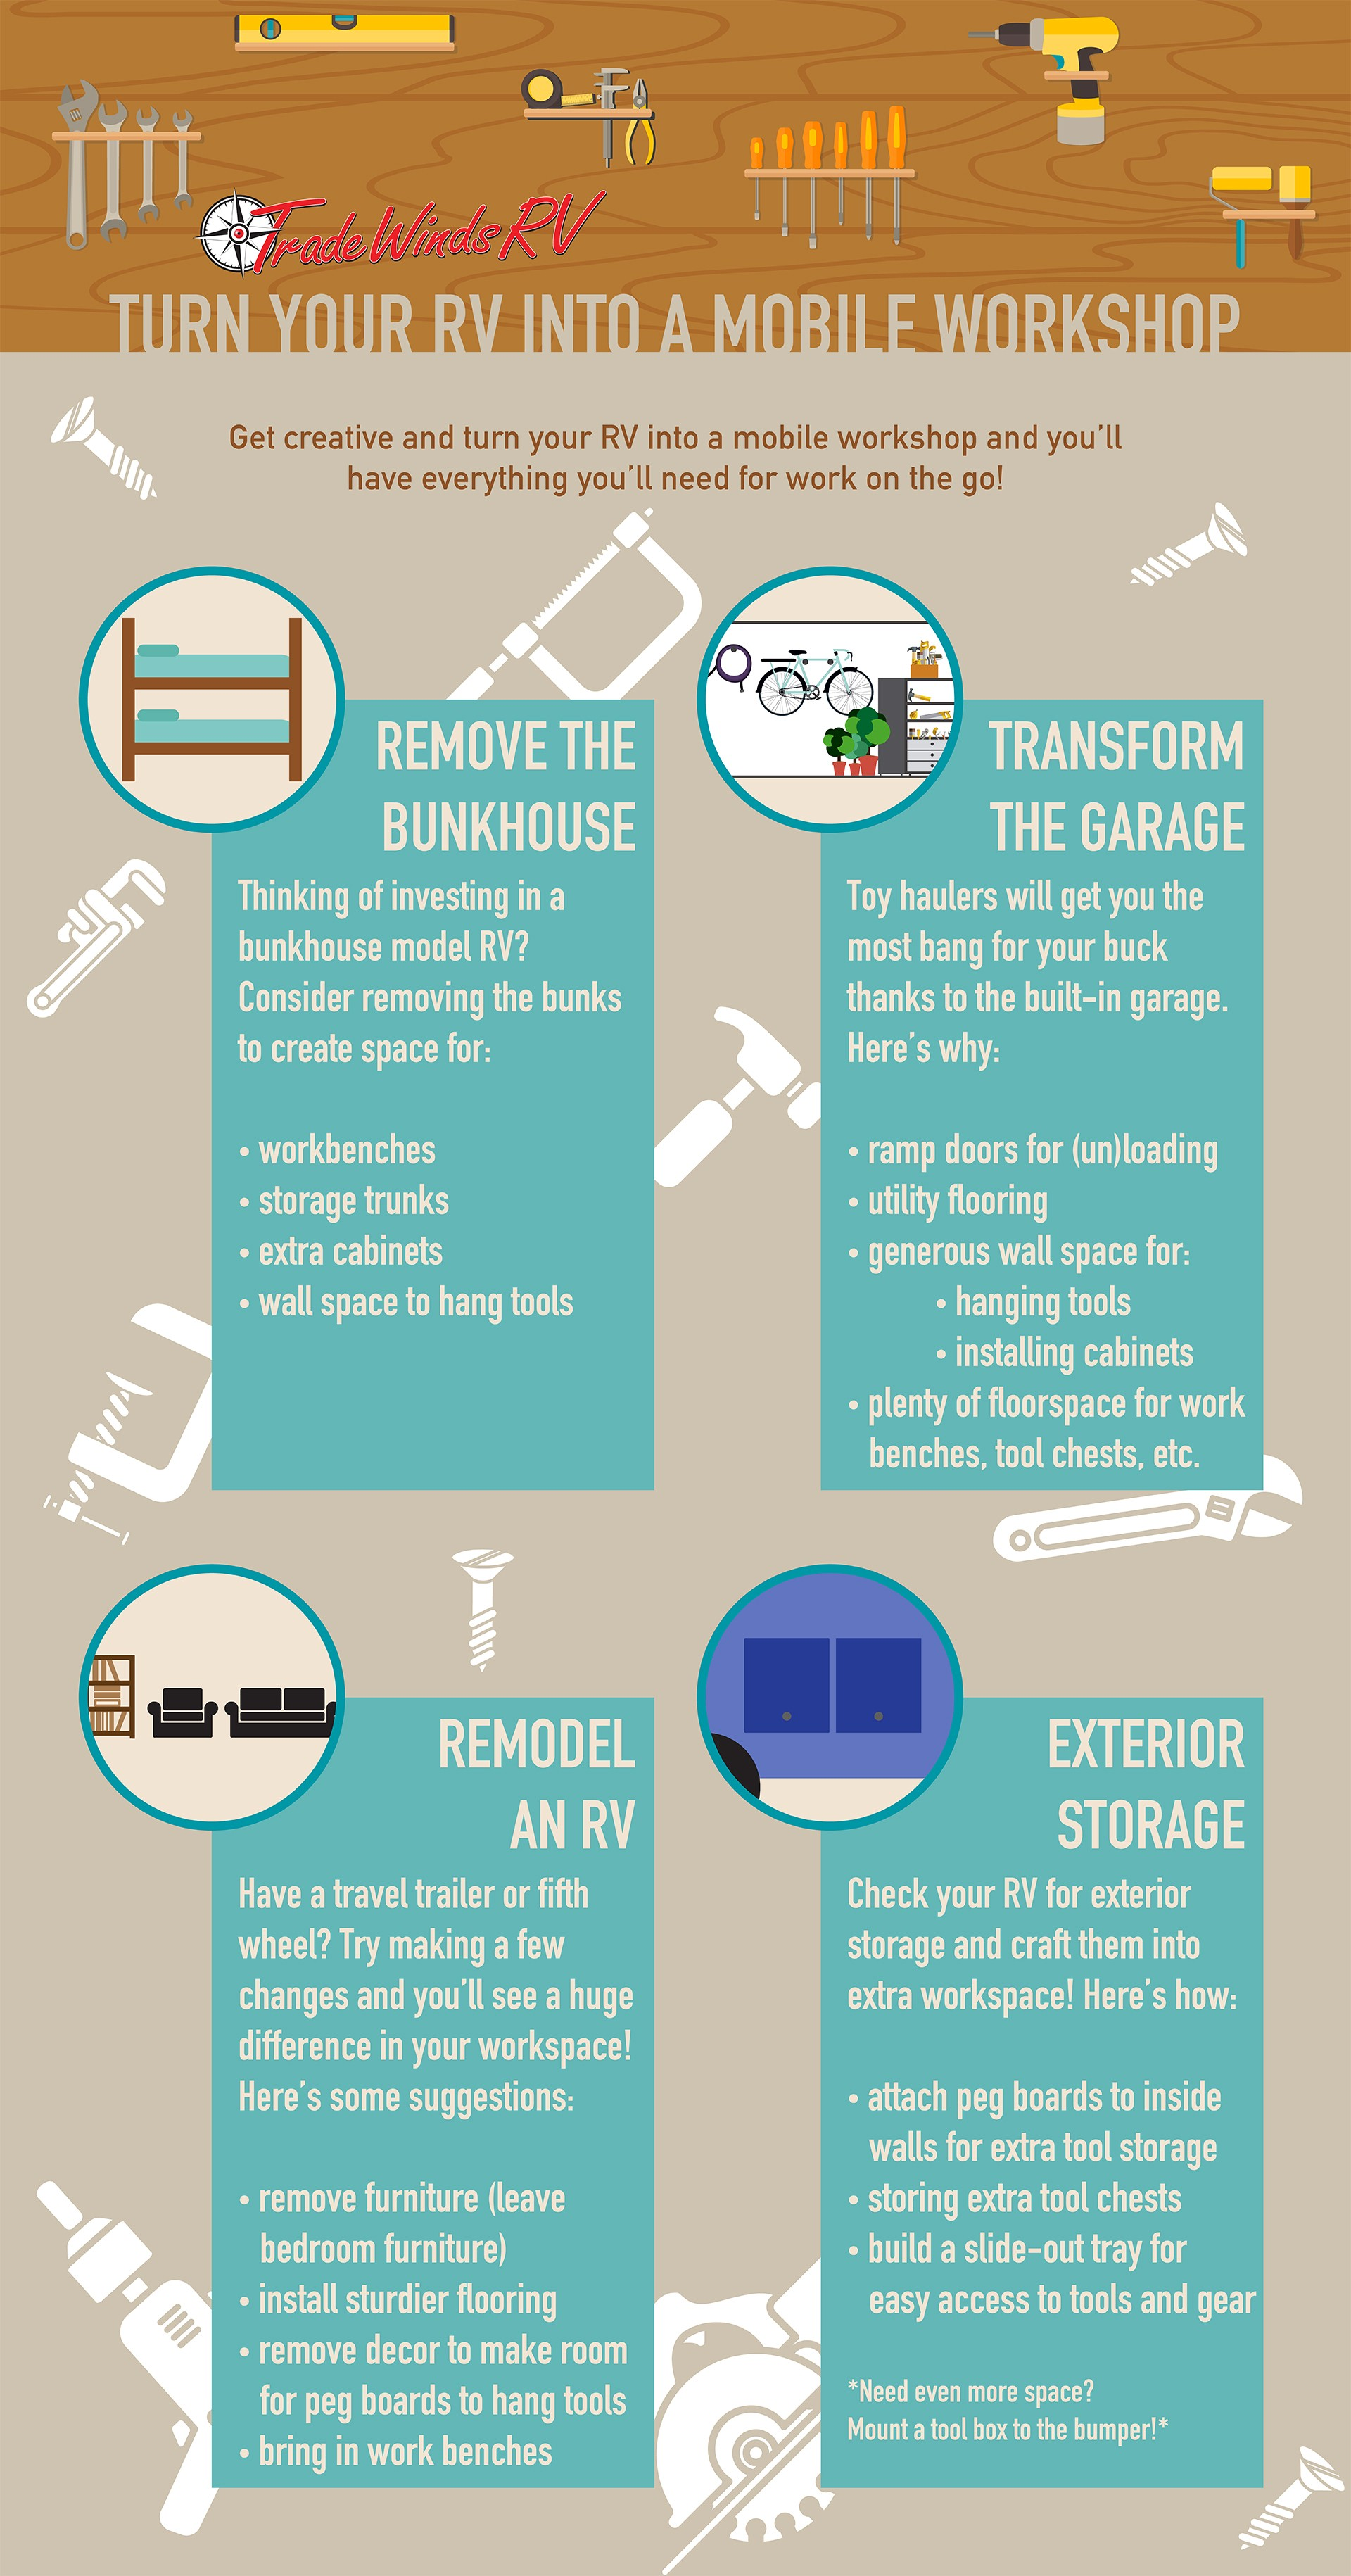 TradeWind RV's guide to transforming your RV into a handyman's workspace